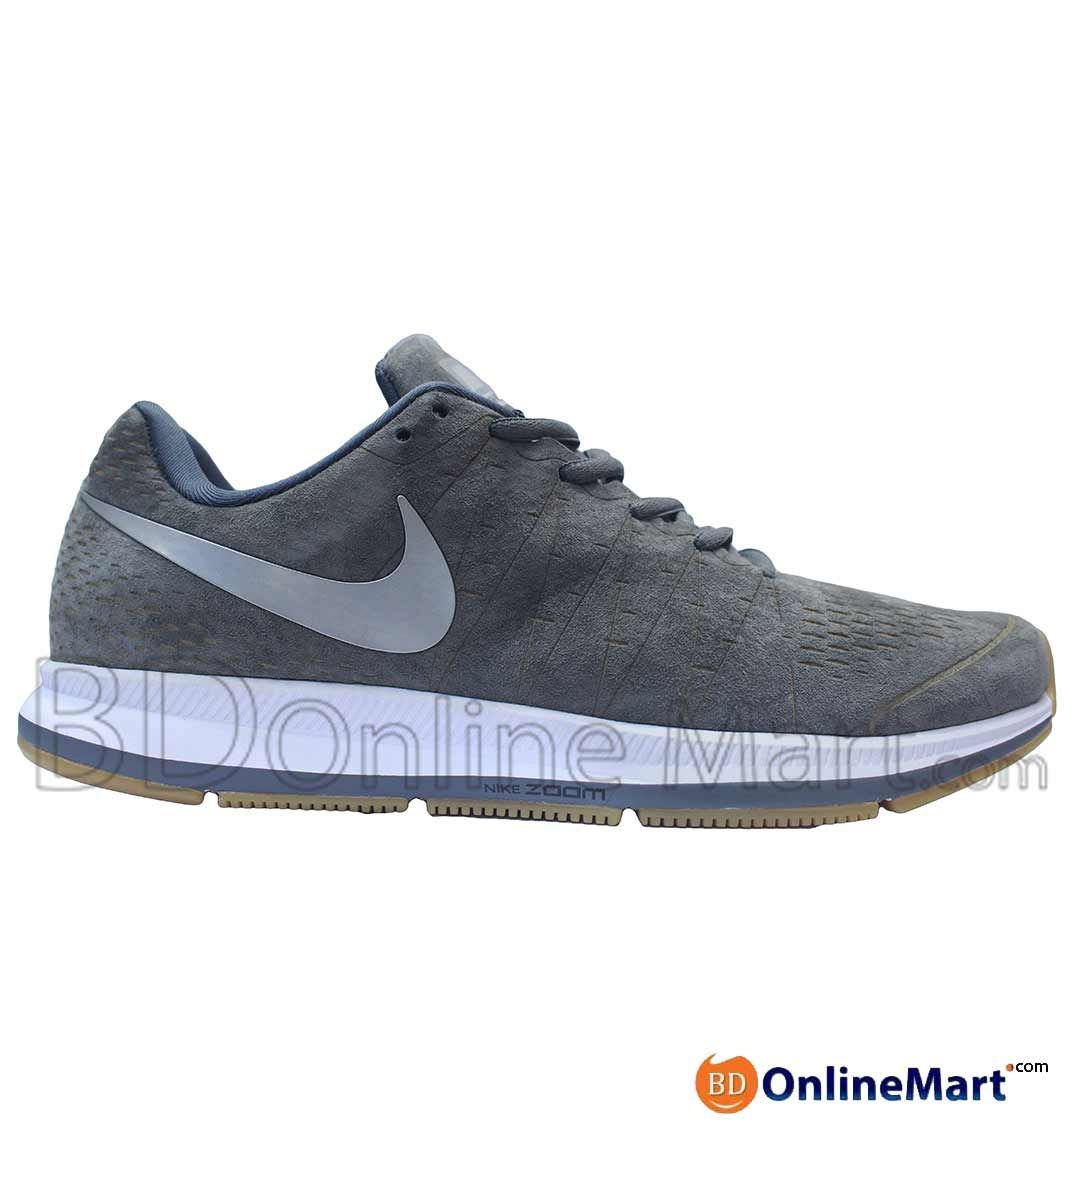 nike shoes online delivery